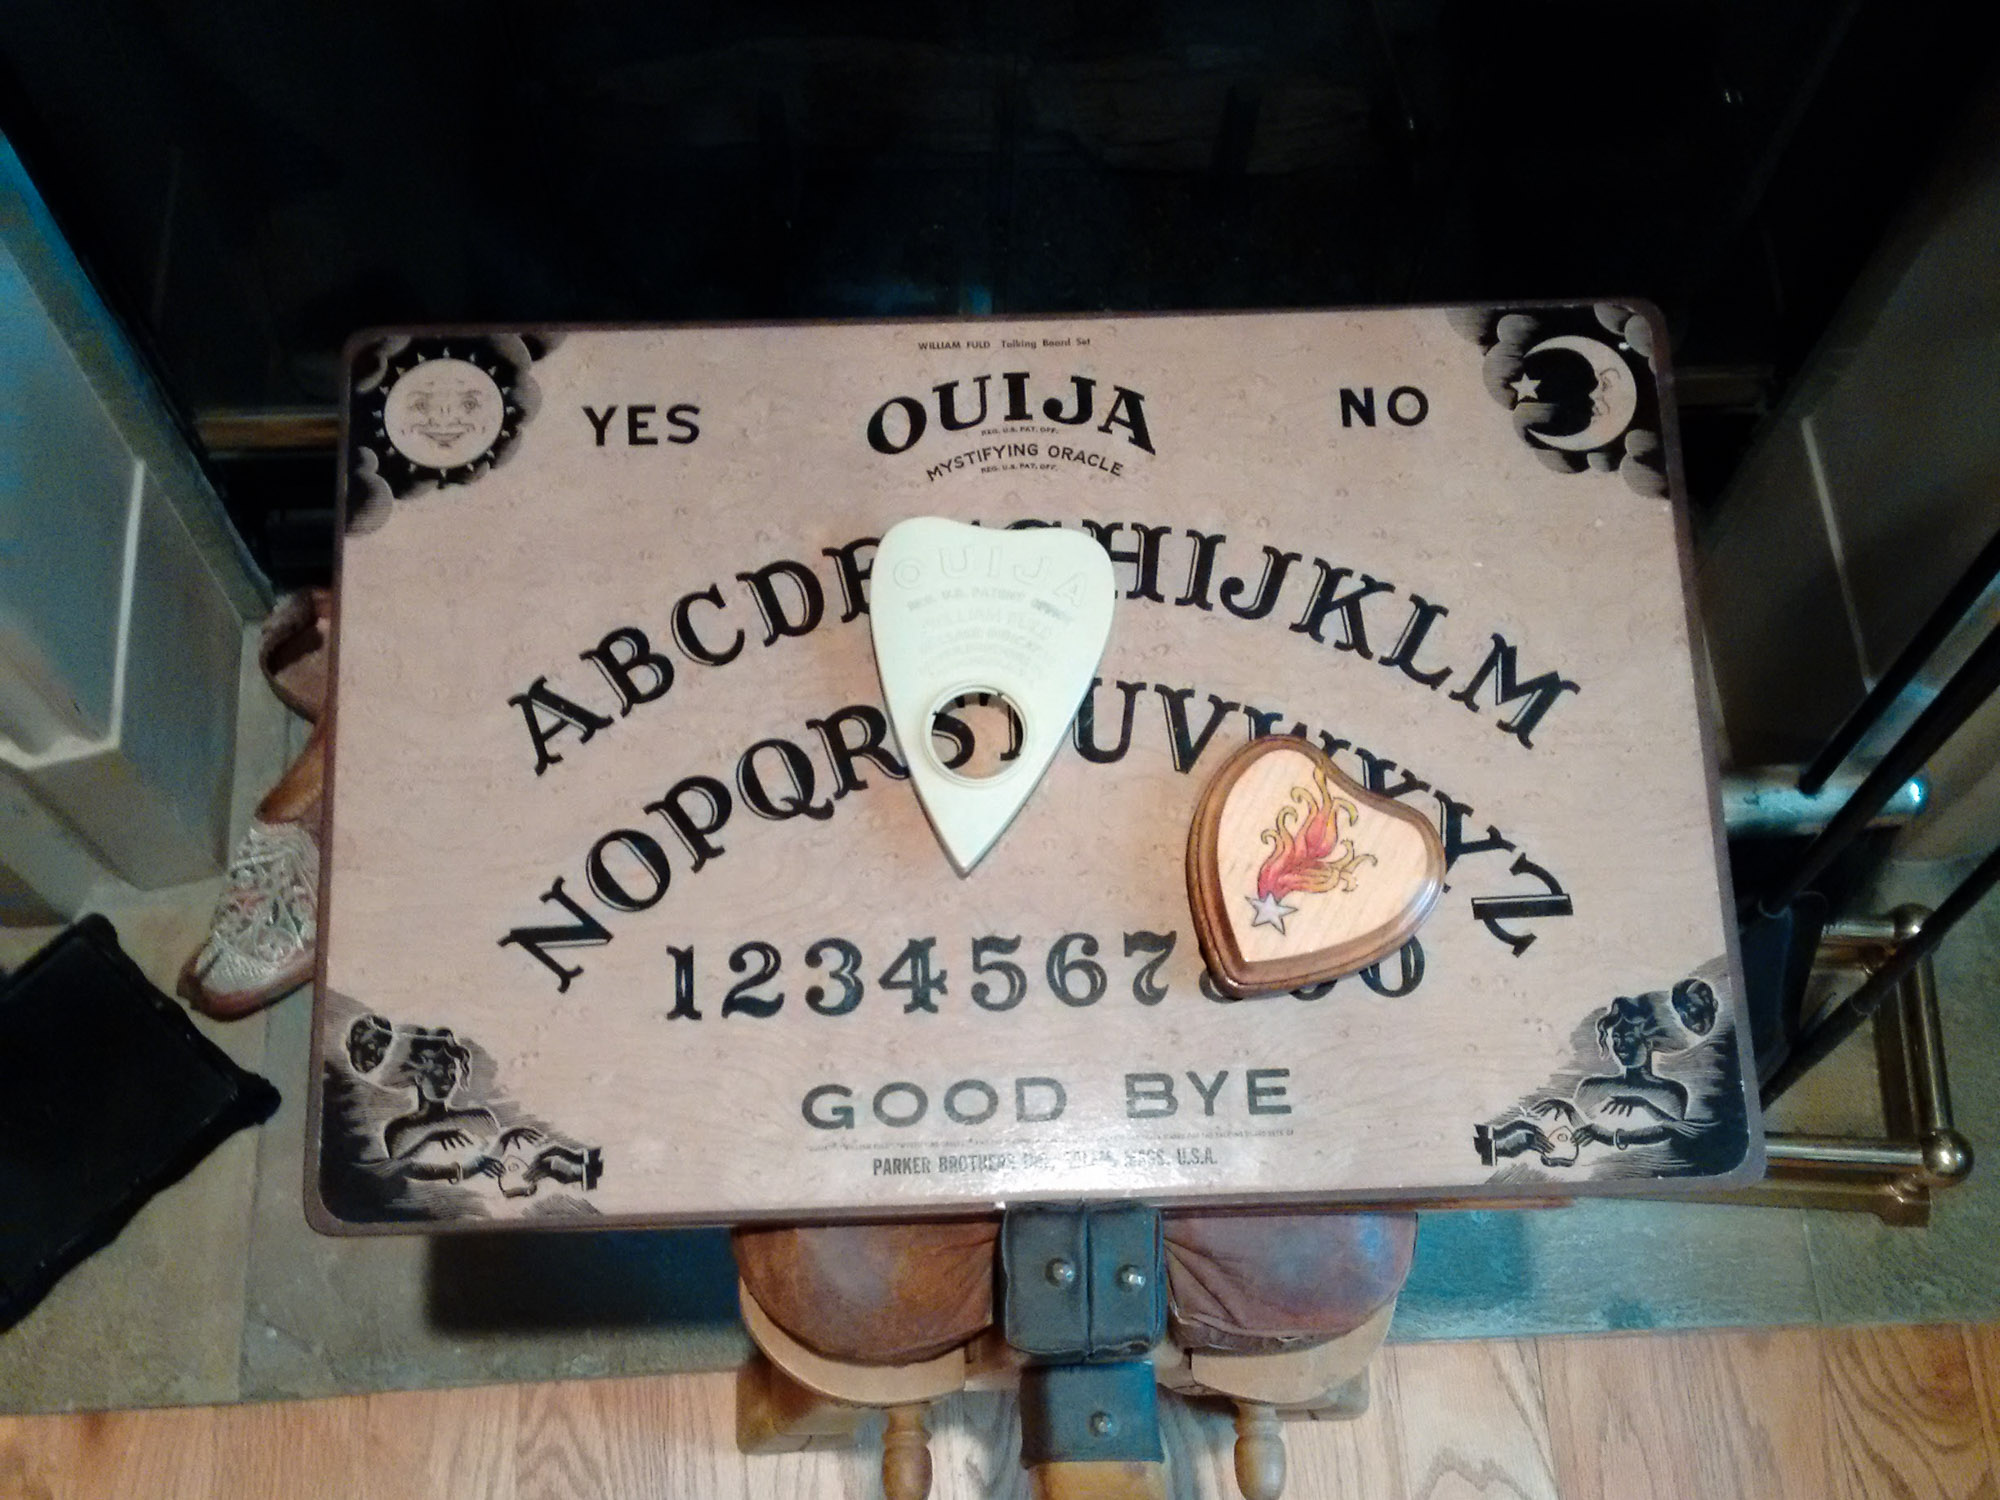 Ouija board in front of Patti's fireplace.